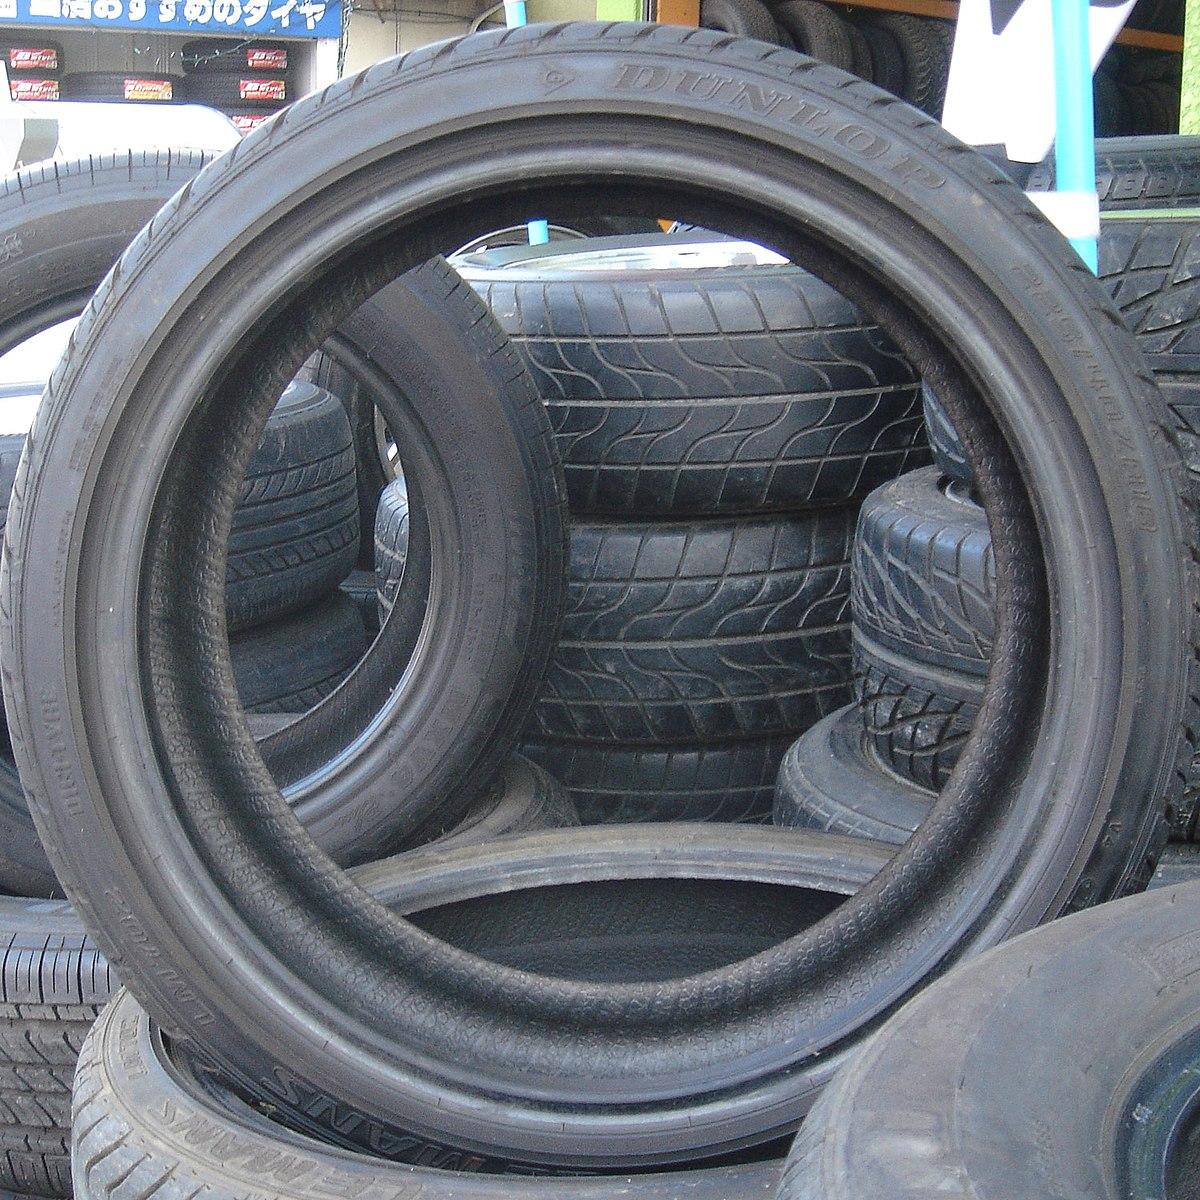 What is a good method to compare tires?